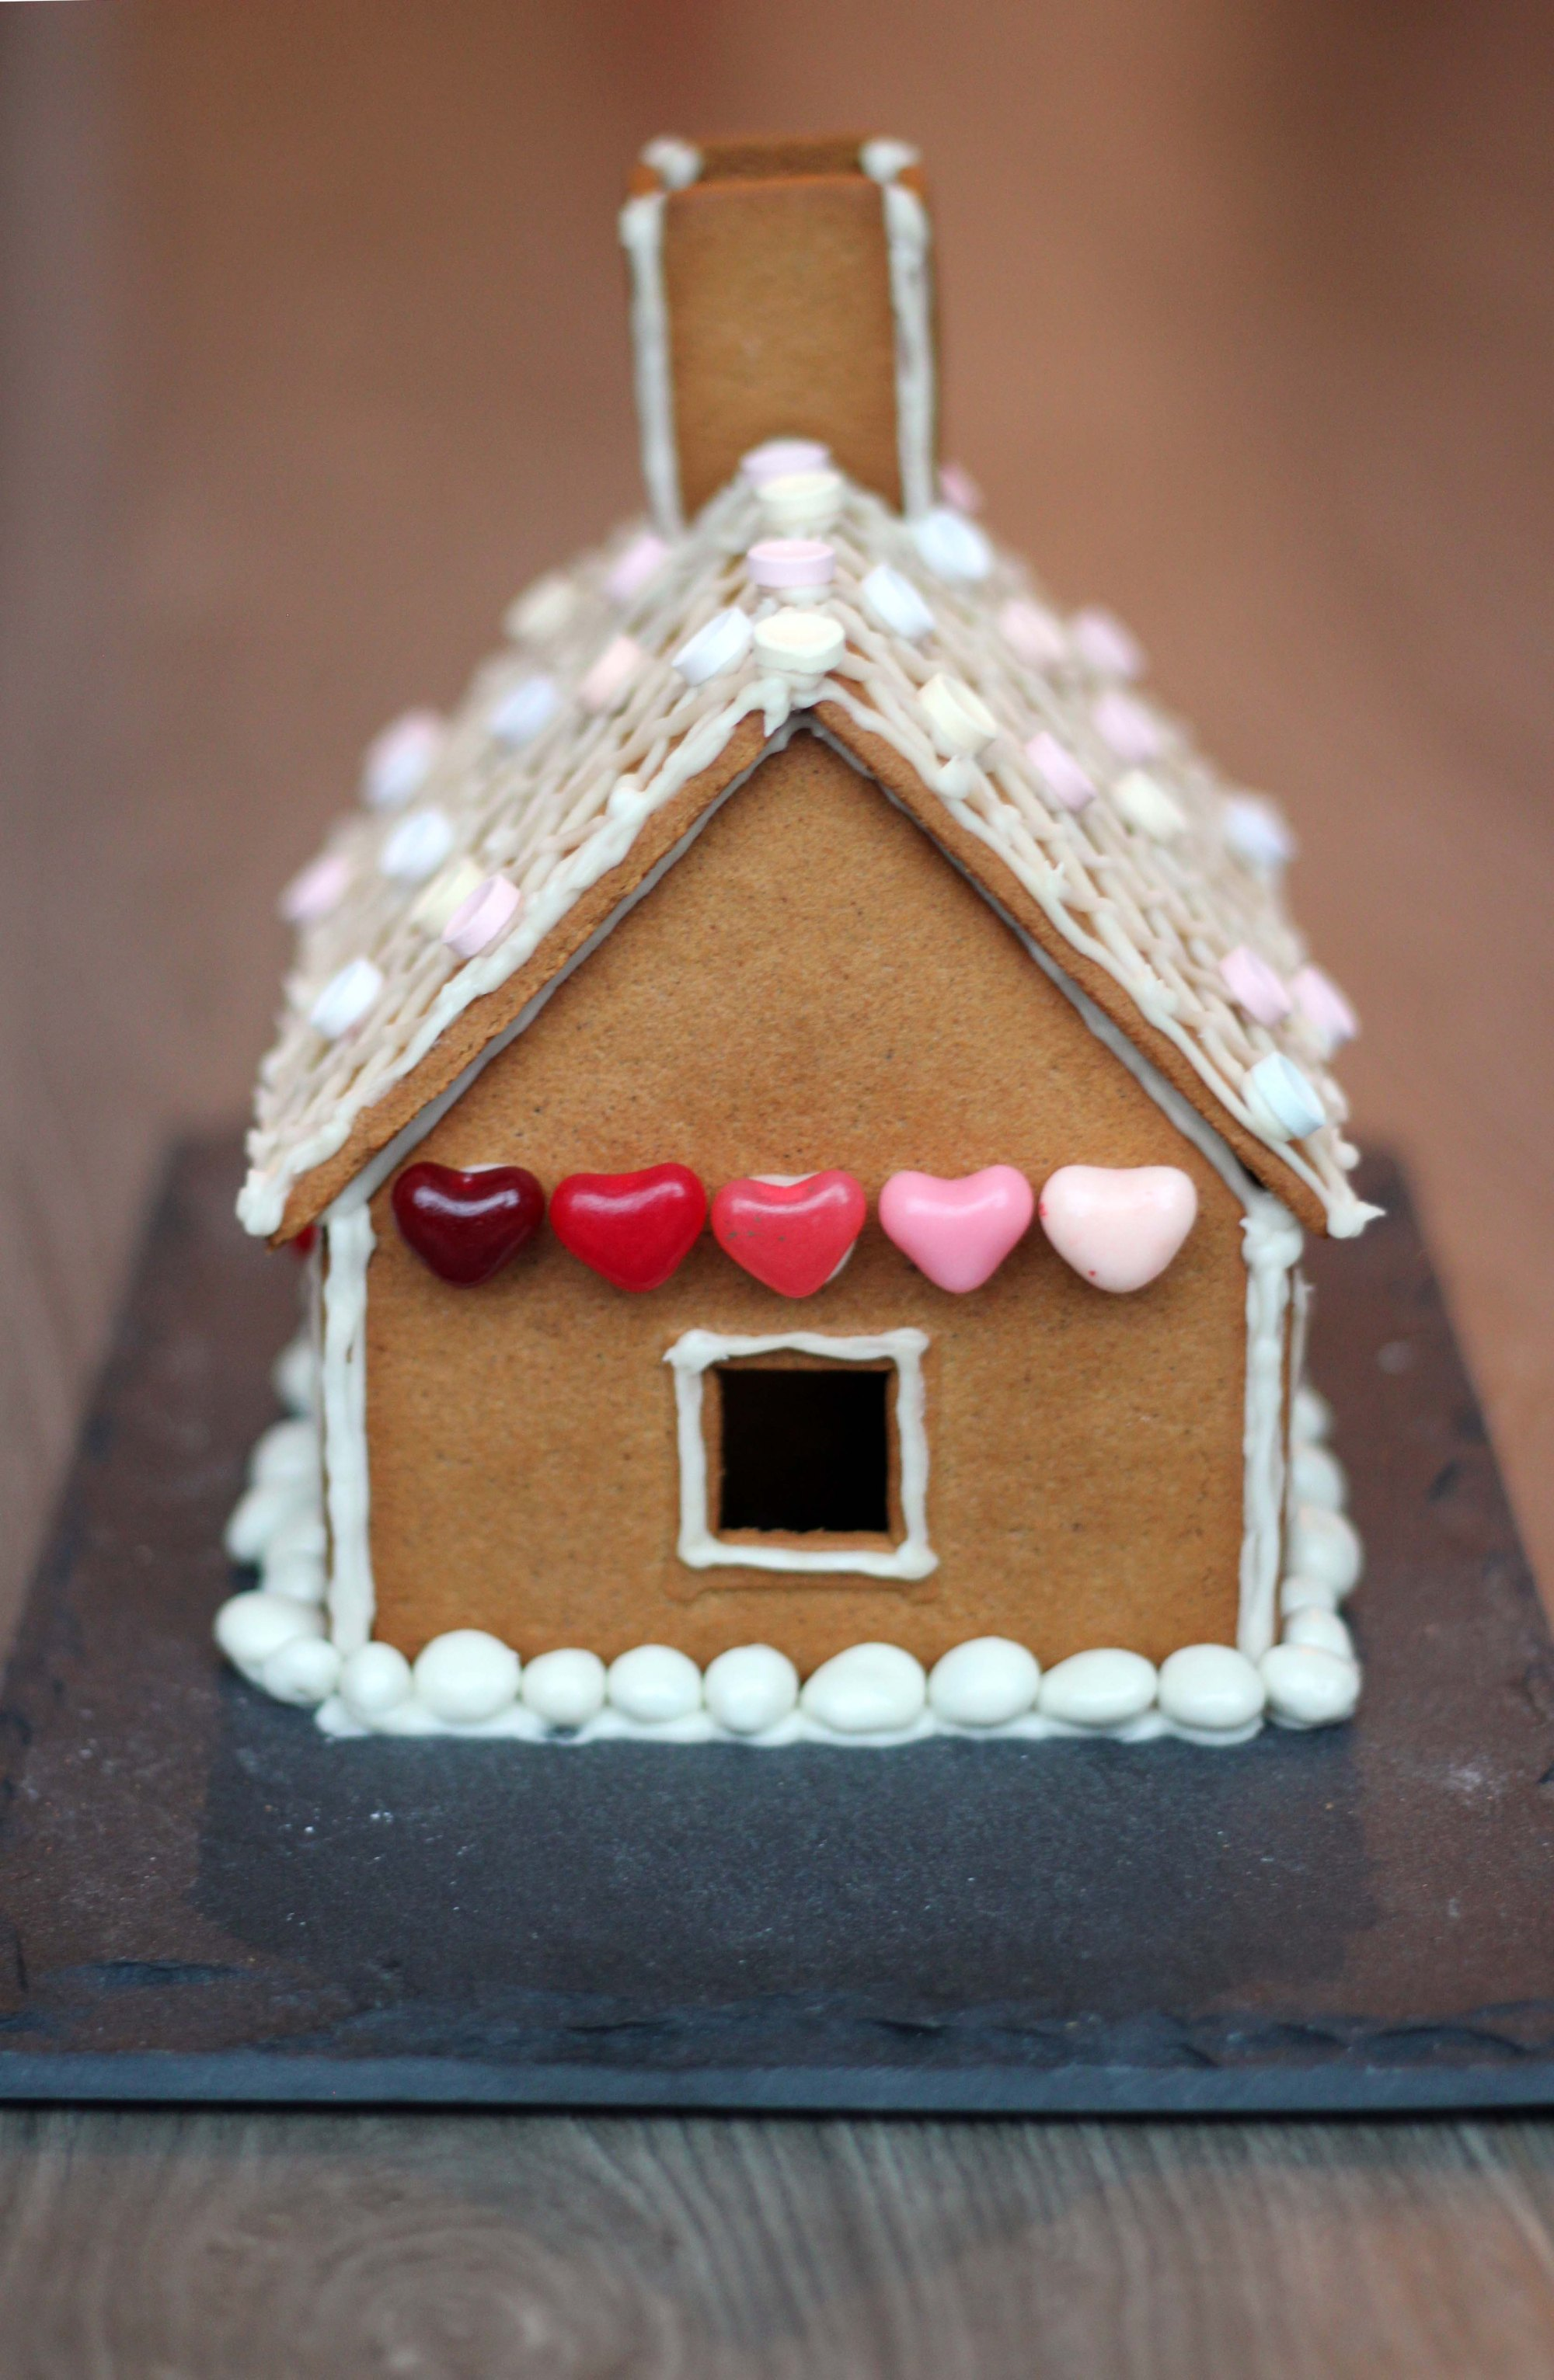 jellybeans decorated gingerbread house